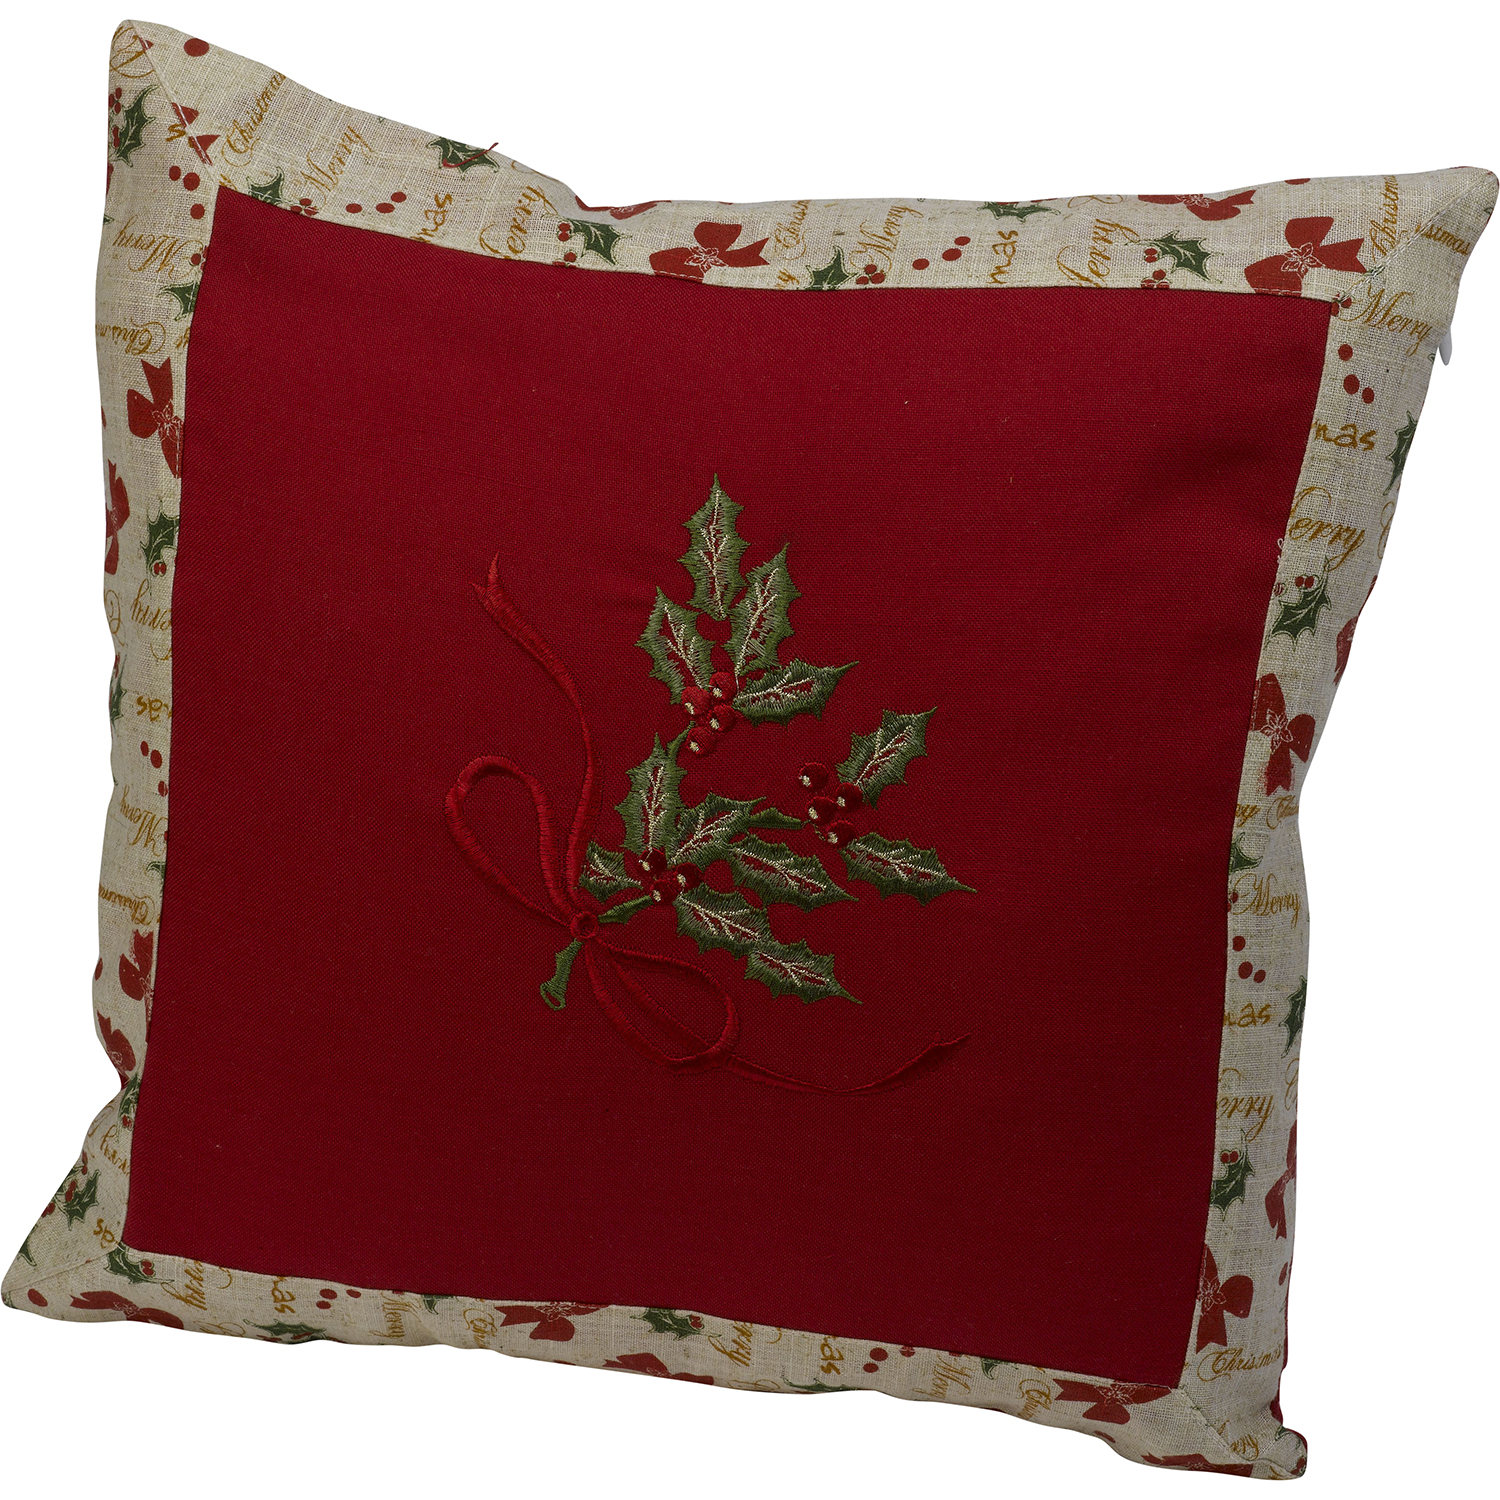 Lovelly Red Christmas Pillow Design Ideas For Your Holiday Mood 42 Find this Pin and more on Christmas ~ Winter ~ Reds & Greens by Susan Bambino. cojines que tienes, adornalos para navidad make as gifts or decorations OR Just add ribbon bells flowers etc to .